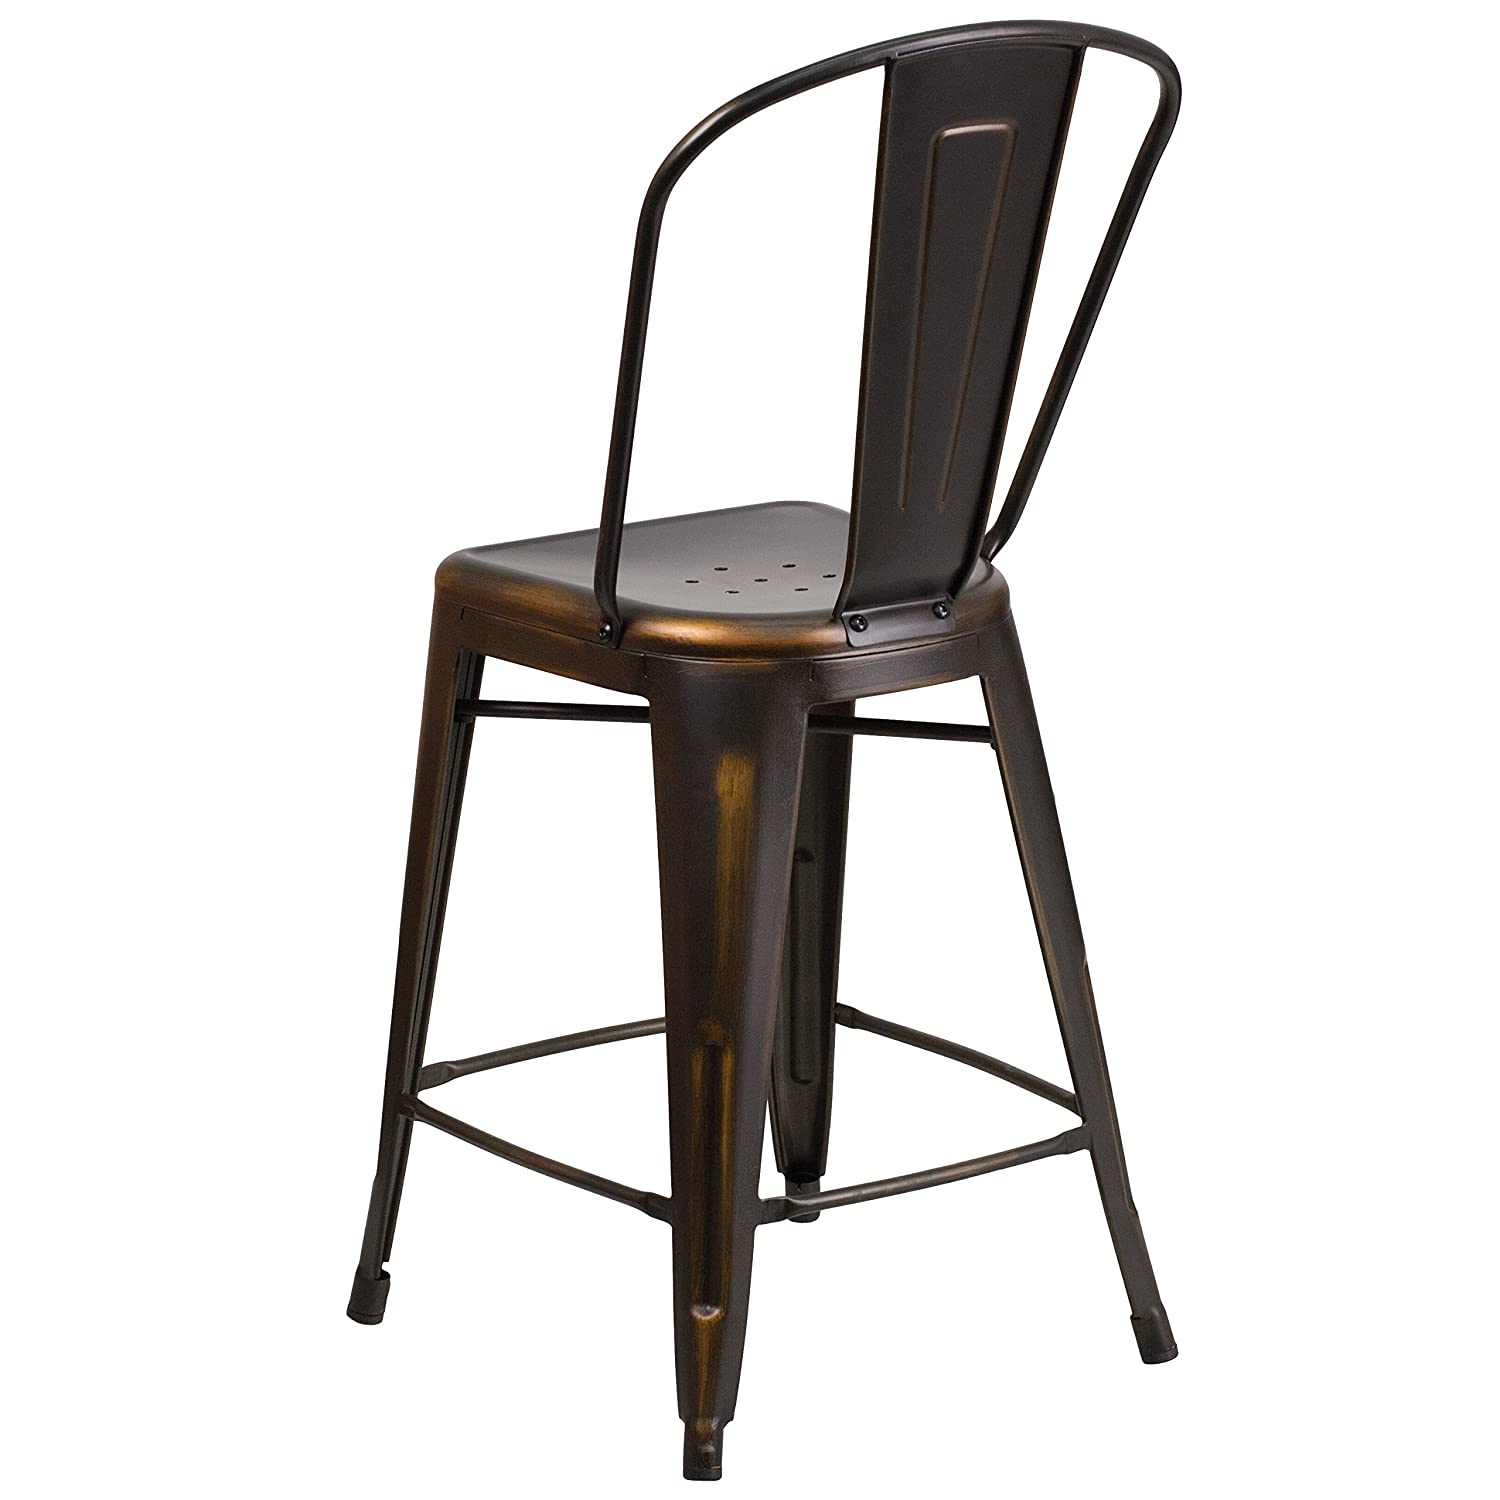 metal counter height stools. Amazon.com: Flash Furniture 24\u0027\u0027 High Distressed Copper Metal Indoor-Outdoor Counter Height Stool With Back: Kitchen \u0026 Dining Stools I